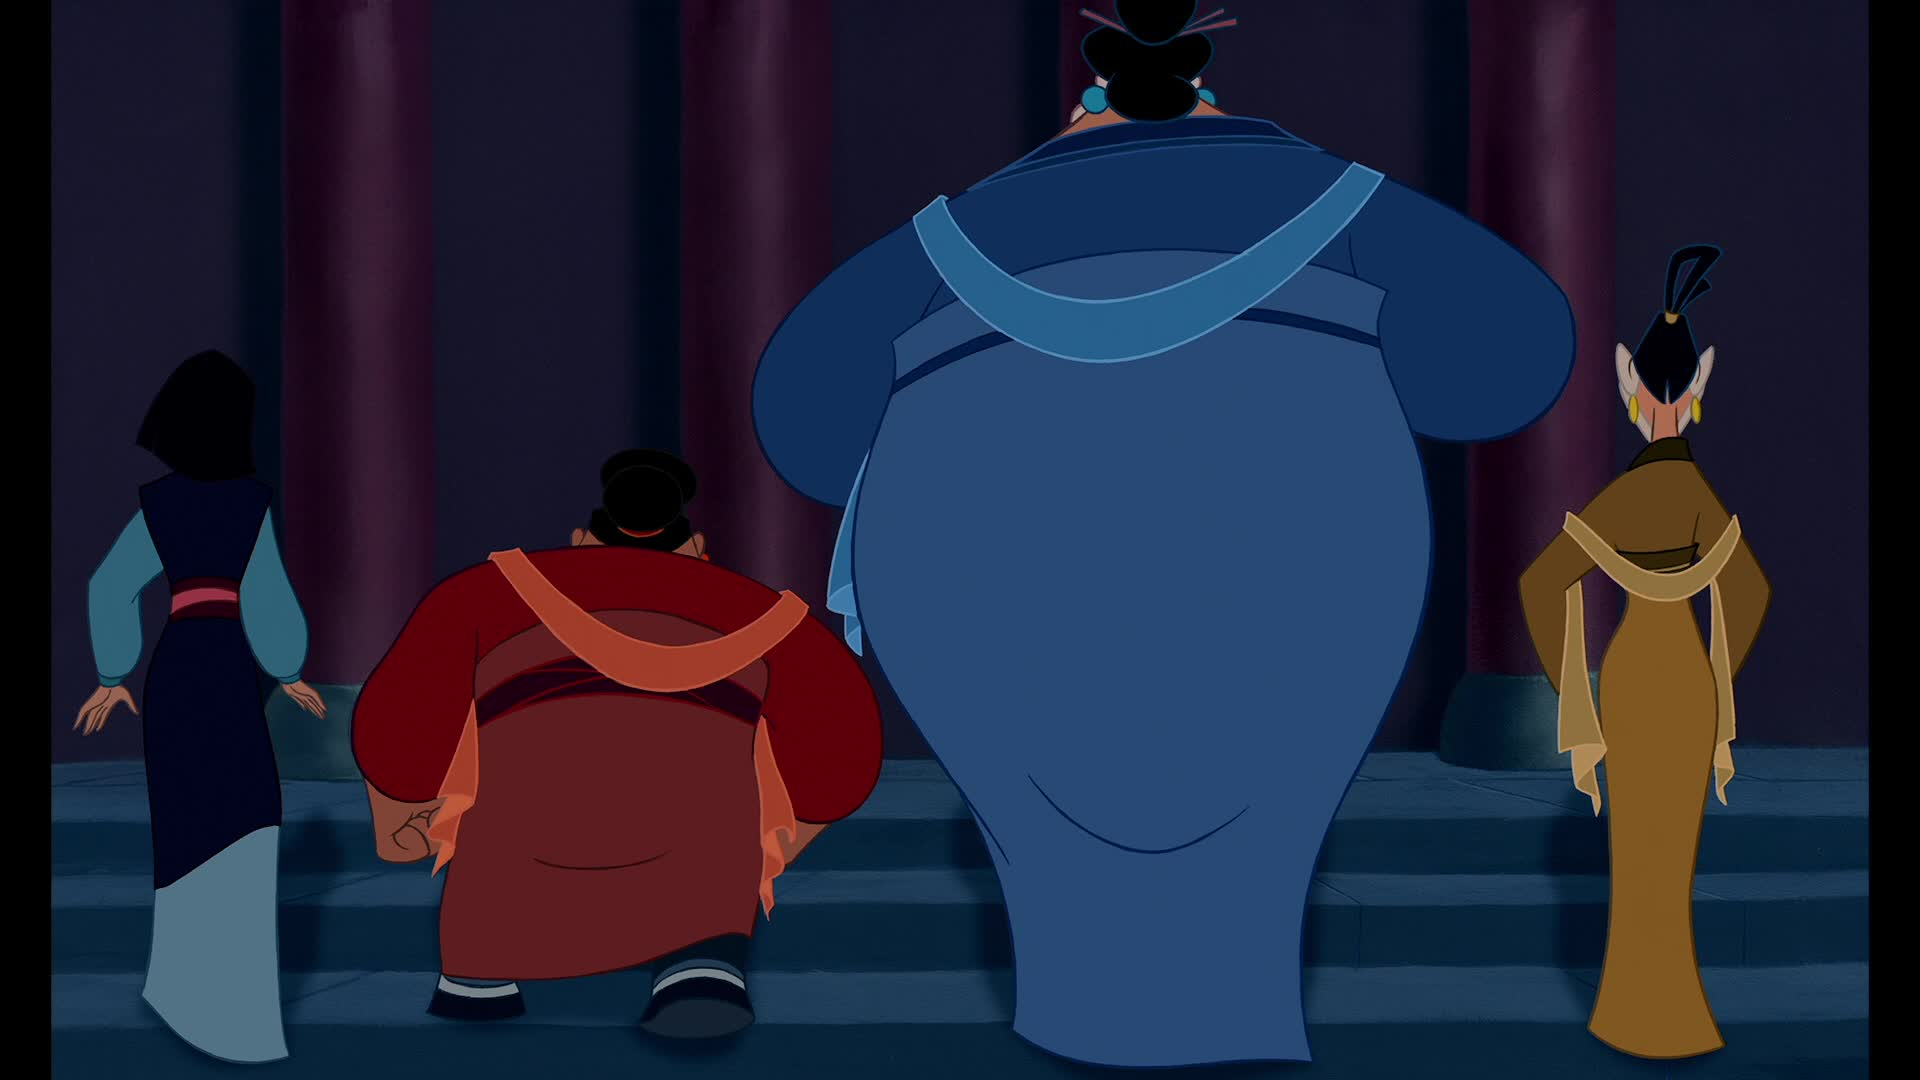 mulans hero quest When shang defends her, noting that mulan is a hero, chi-fu dismisses the  thought by arrogantly stating his belief that as a woman, mulan will never be  worth.